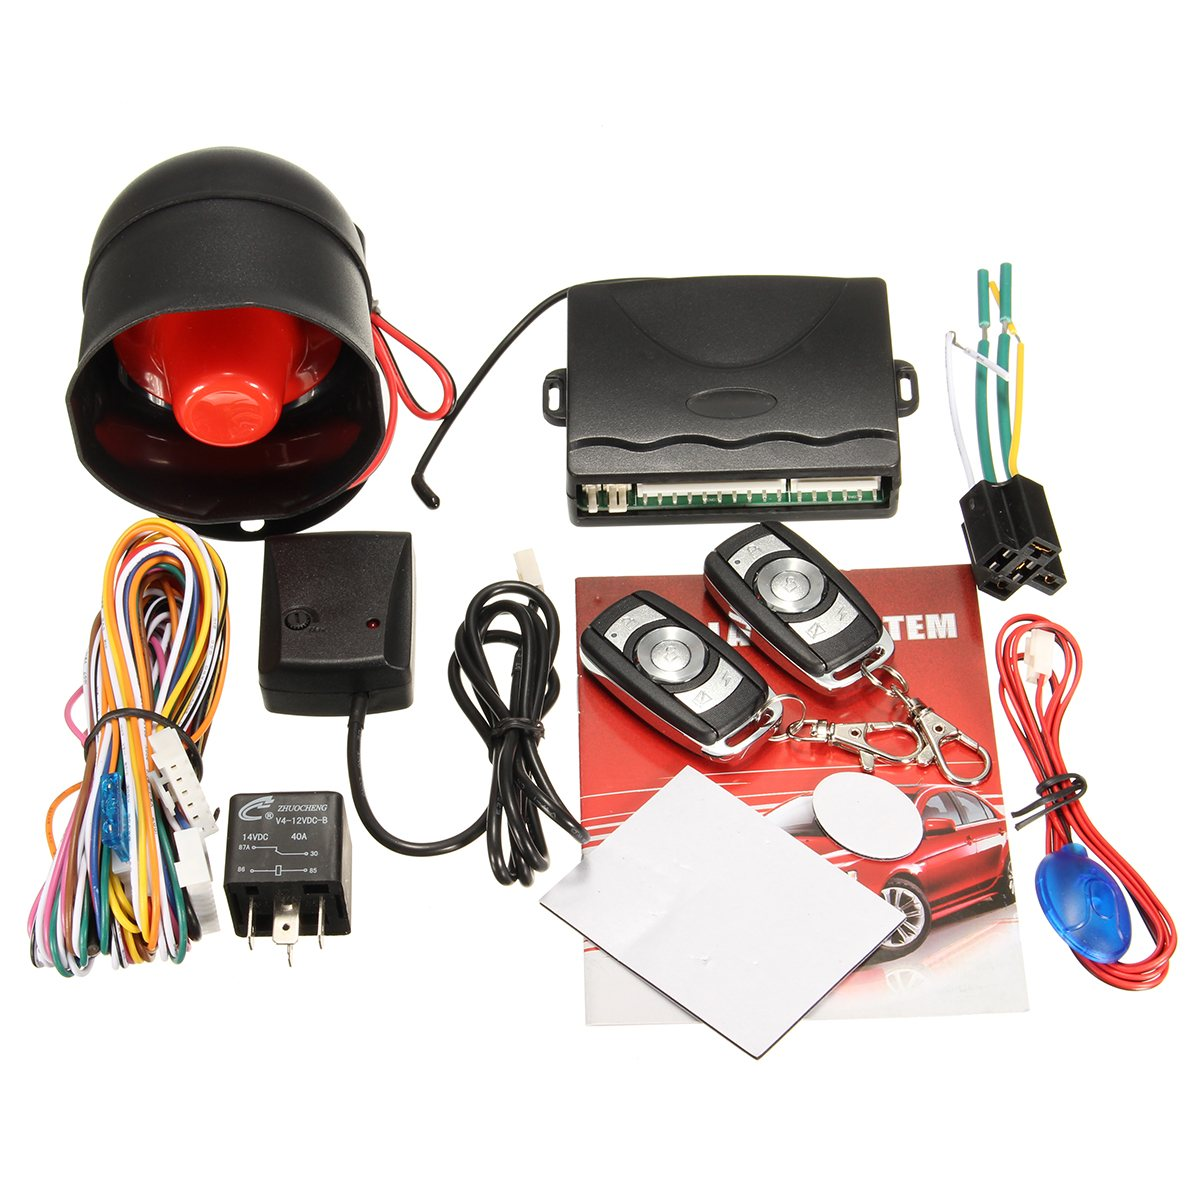 NEW Universal One Way Car Vehicle Alarm Protection Security System Keyless Entry Siren +2 Remote Burglar